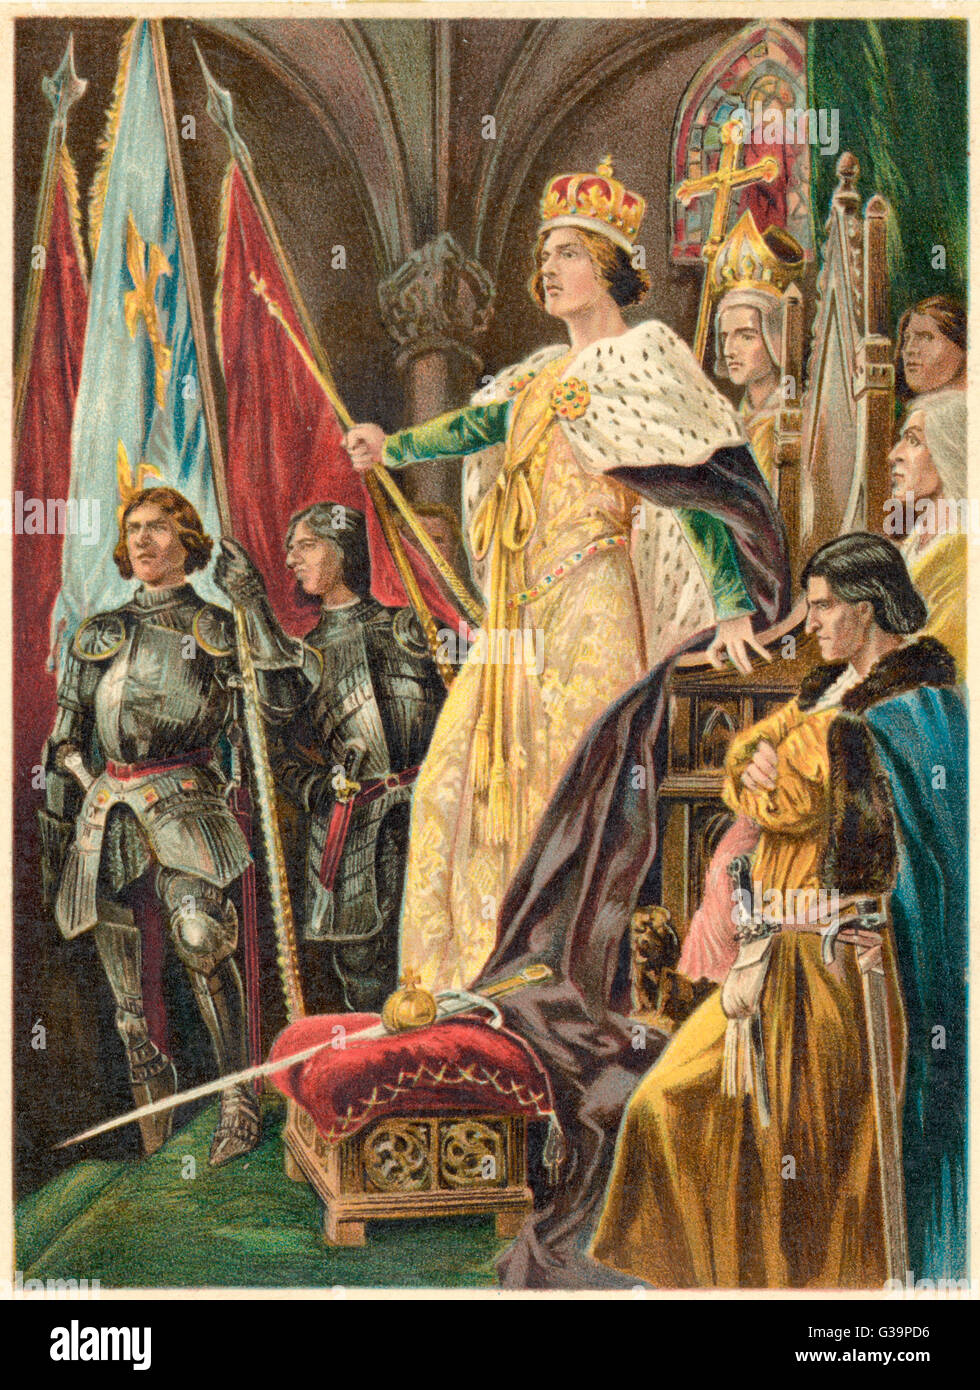 Edward IV is crowned at  Westminster         Date: 29th June 1461 - Stock Image